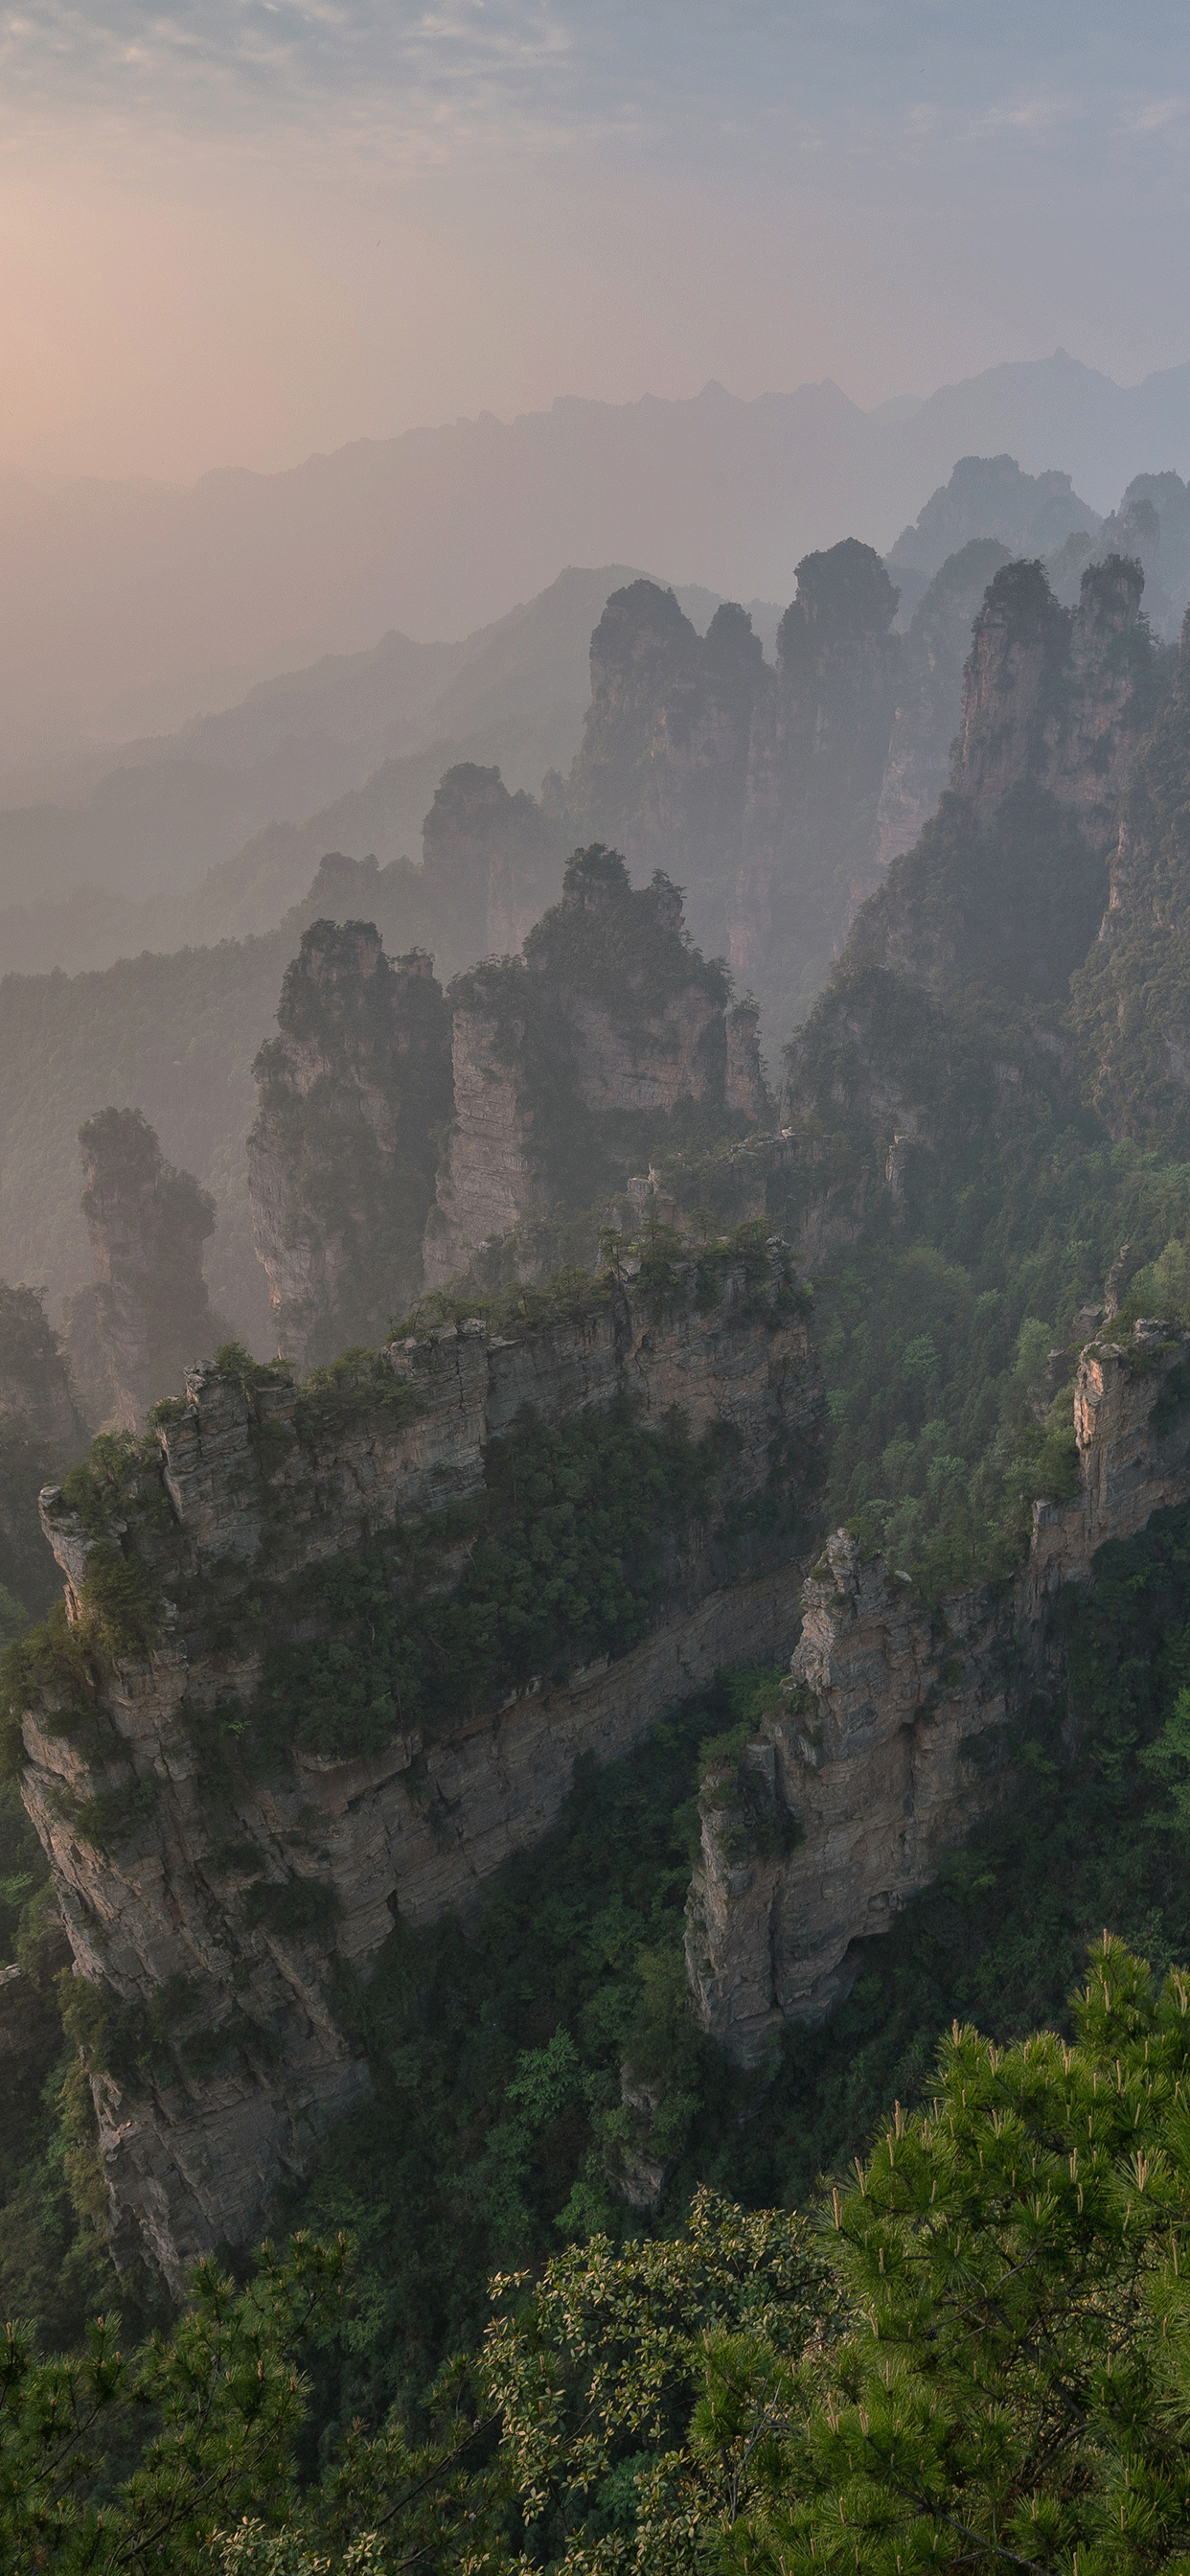 iPhone wallpapers zhangjiajie national park 2 Fonds d'écran iPhone du 17/06/2019